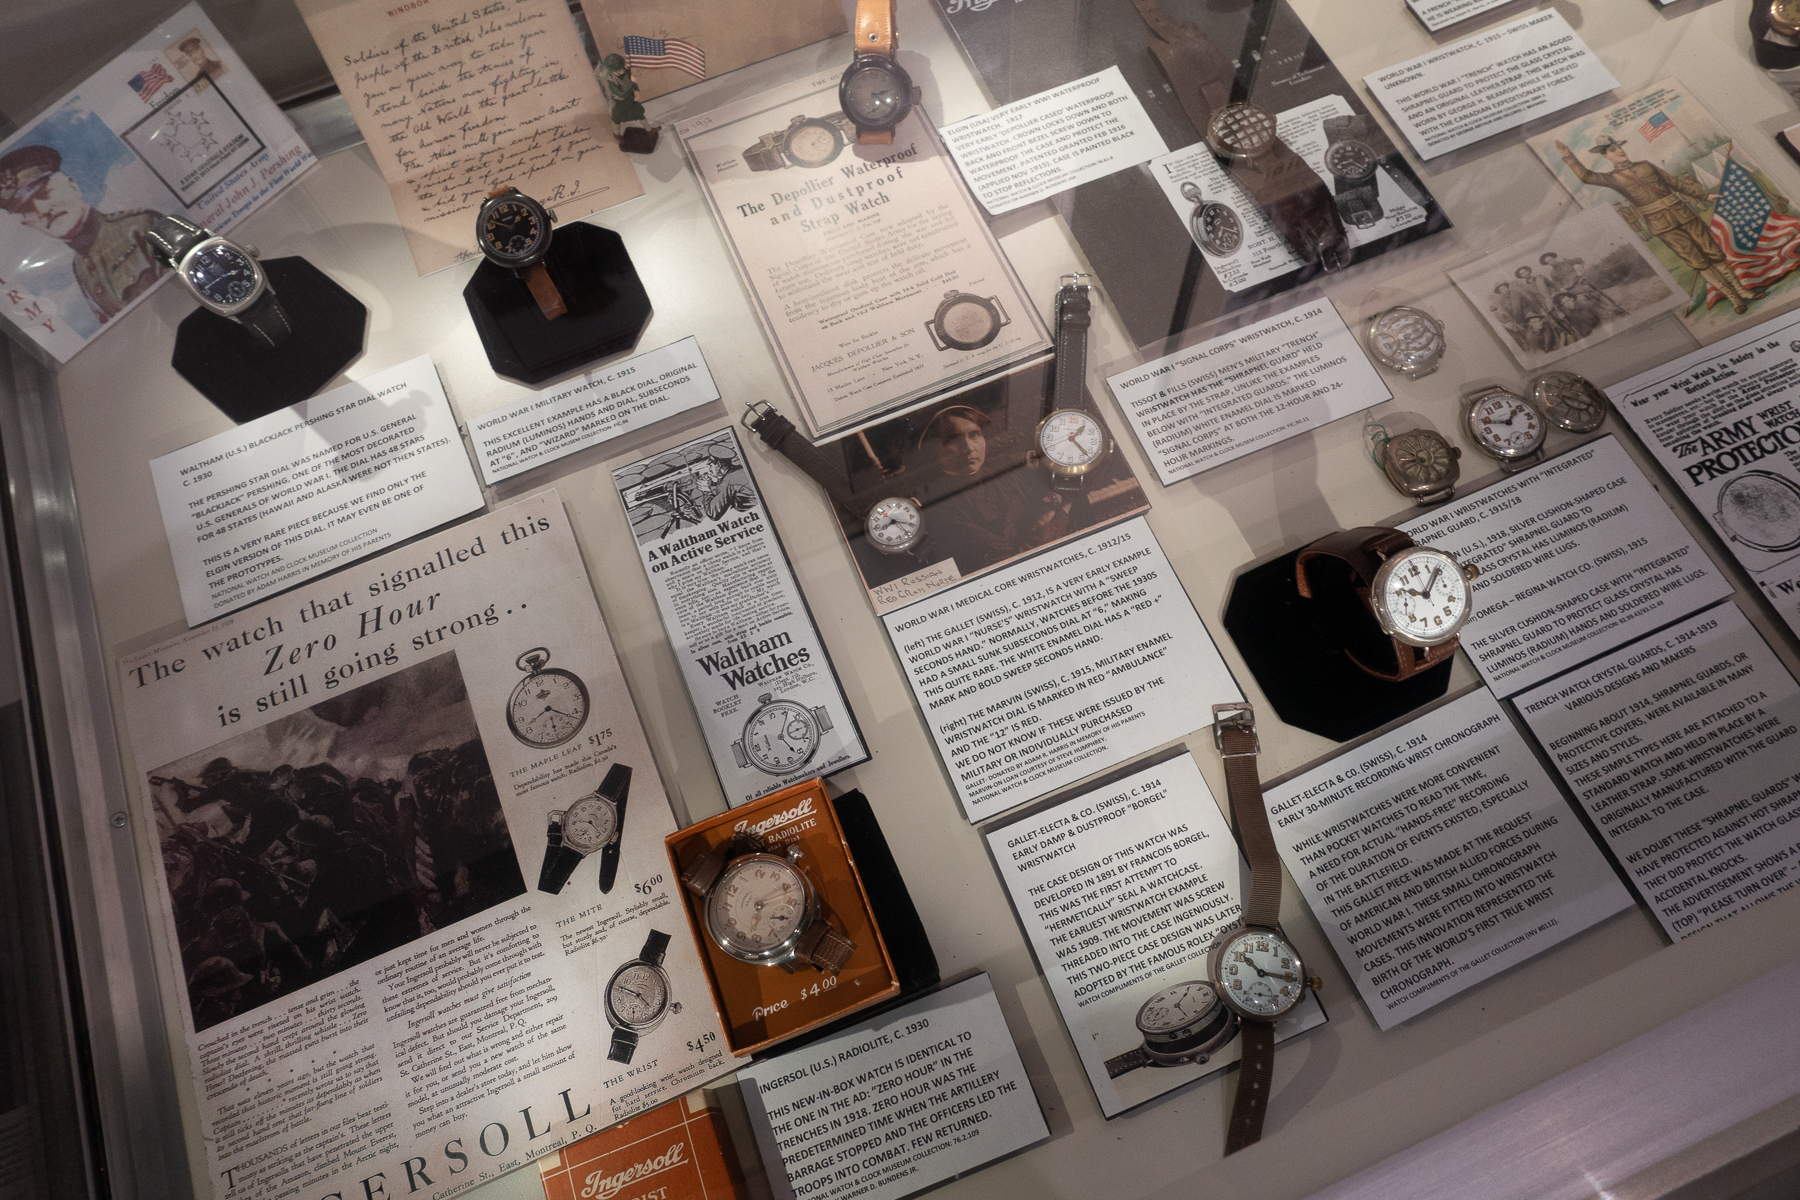 Early Wrist Watches